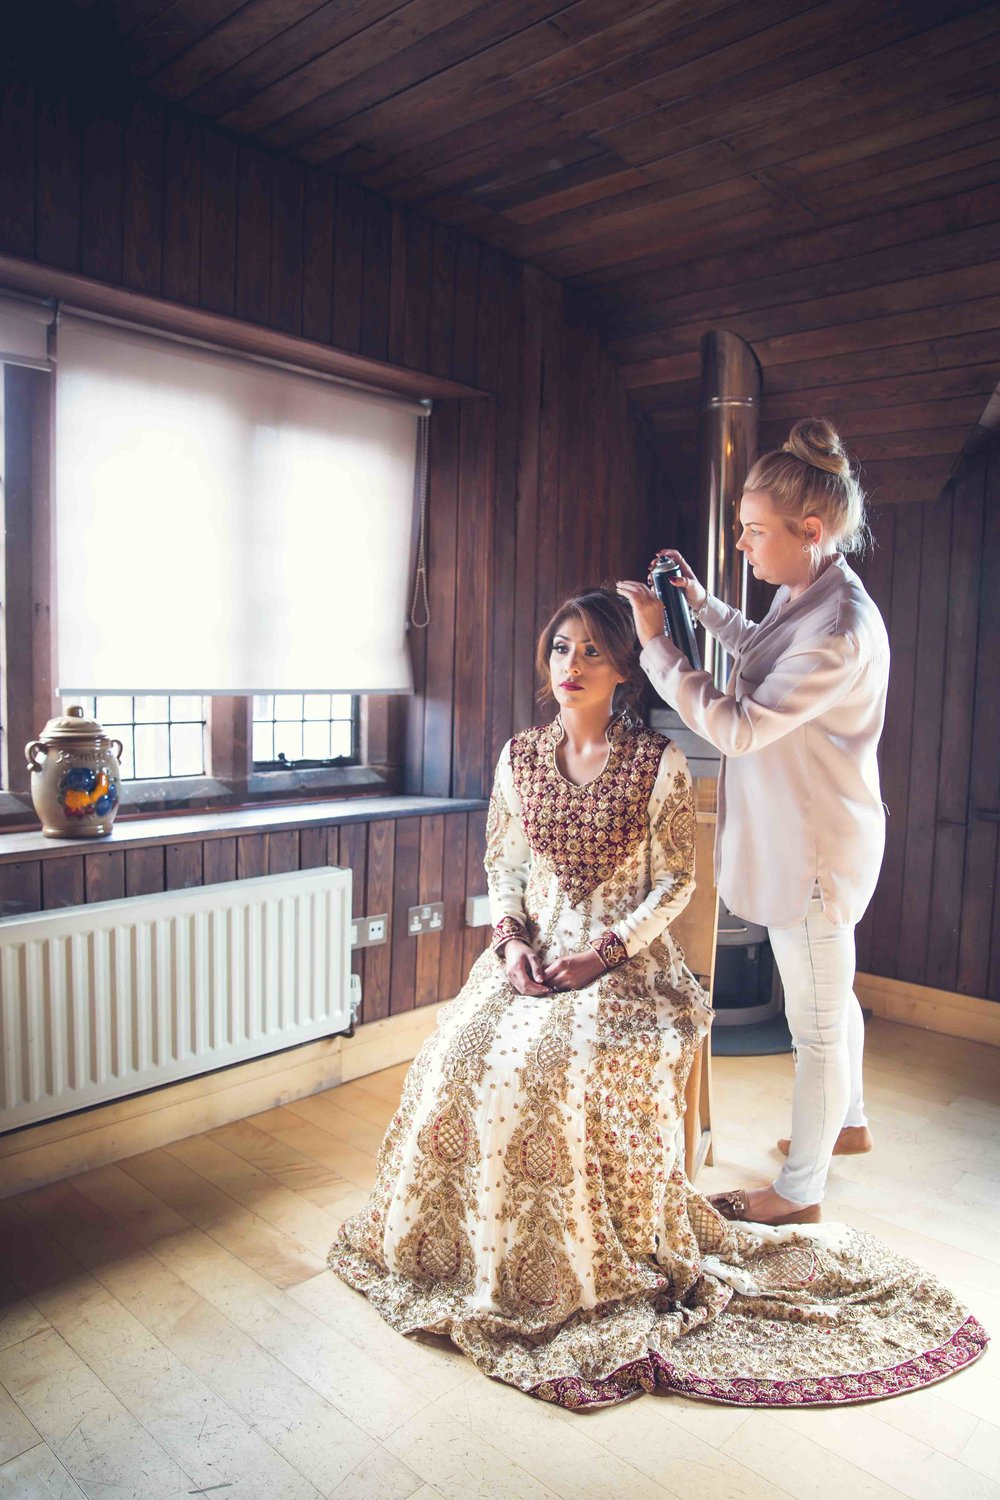 Asian Wedding Photographer Opu Sultan Photography Lyme Park Scotland Edinburgh Glasgow London Manchester Liverpool Birmingham Wedding Photos prewed shoot Azman & Saira Blog-42.jpg